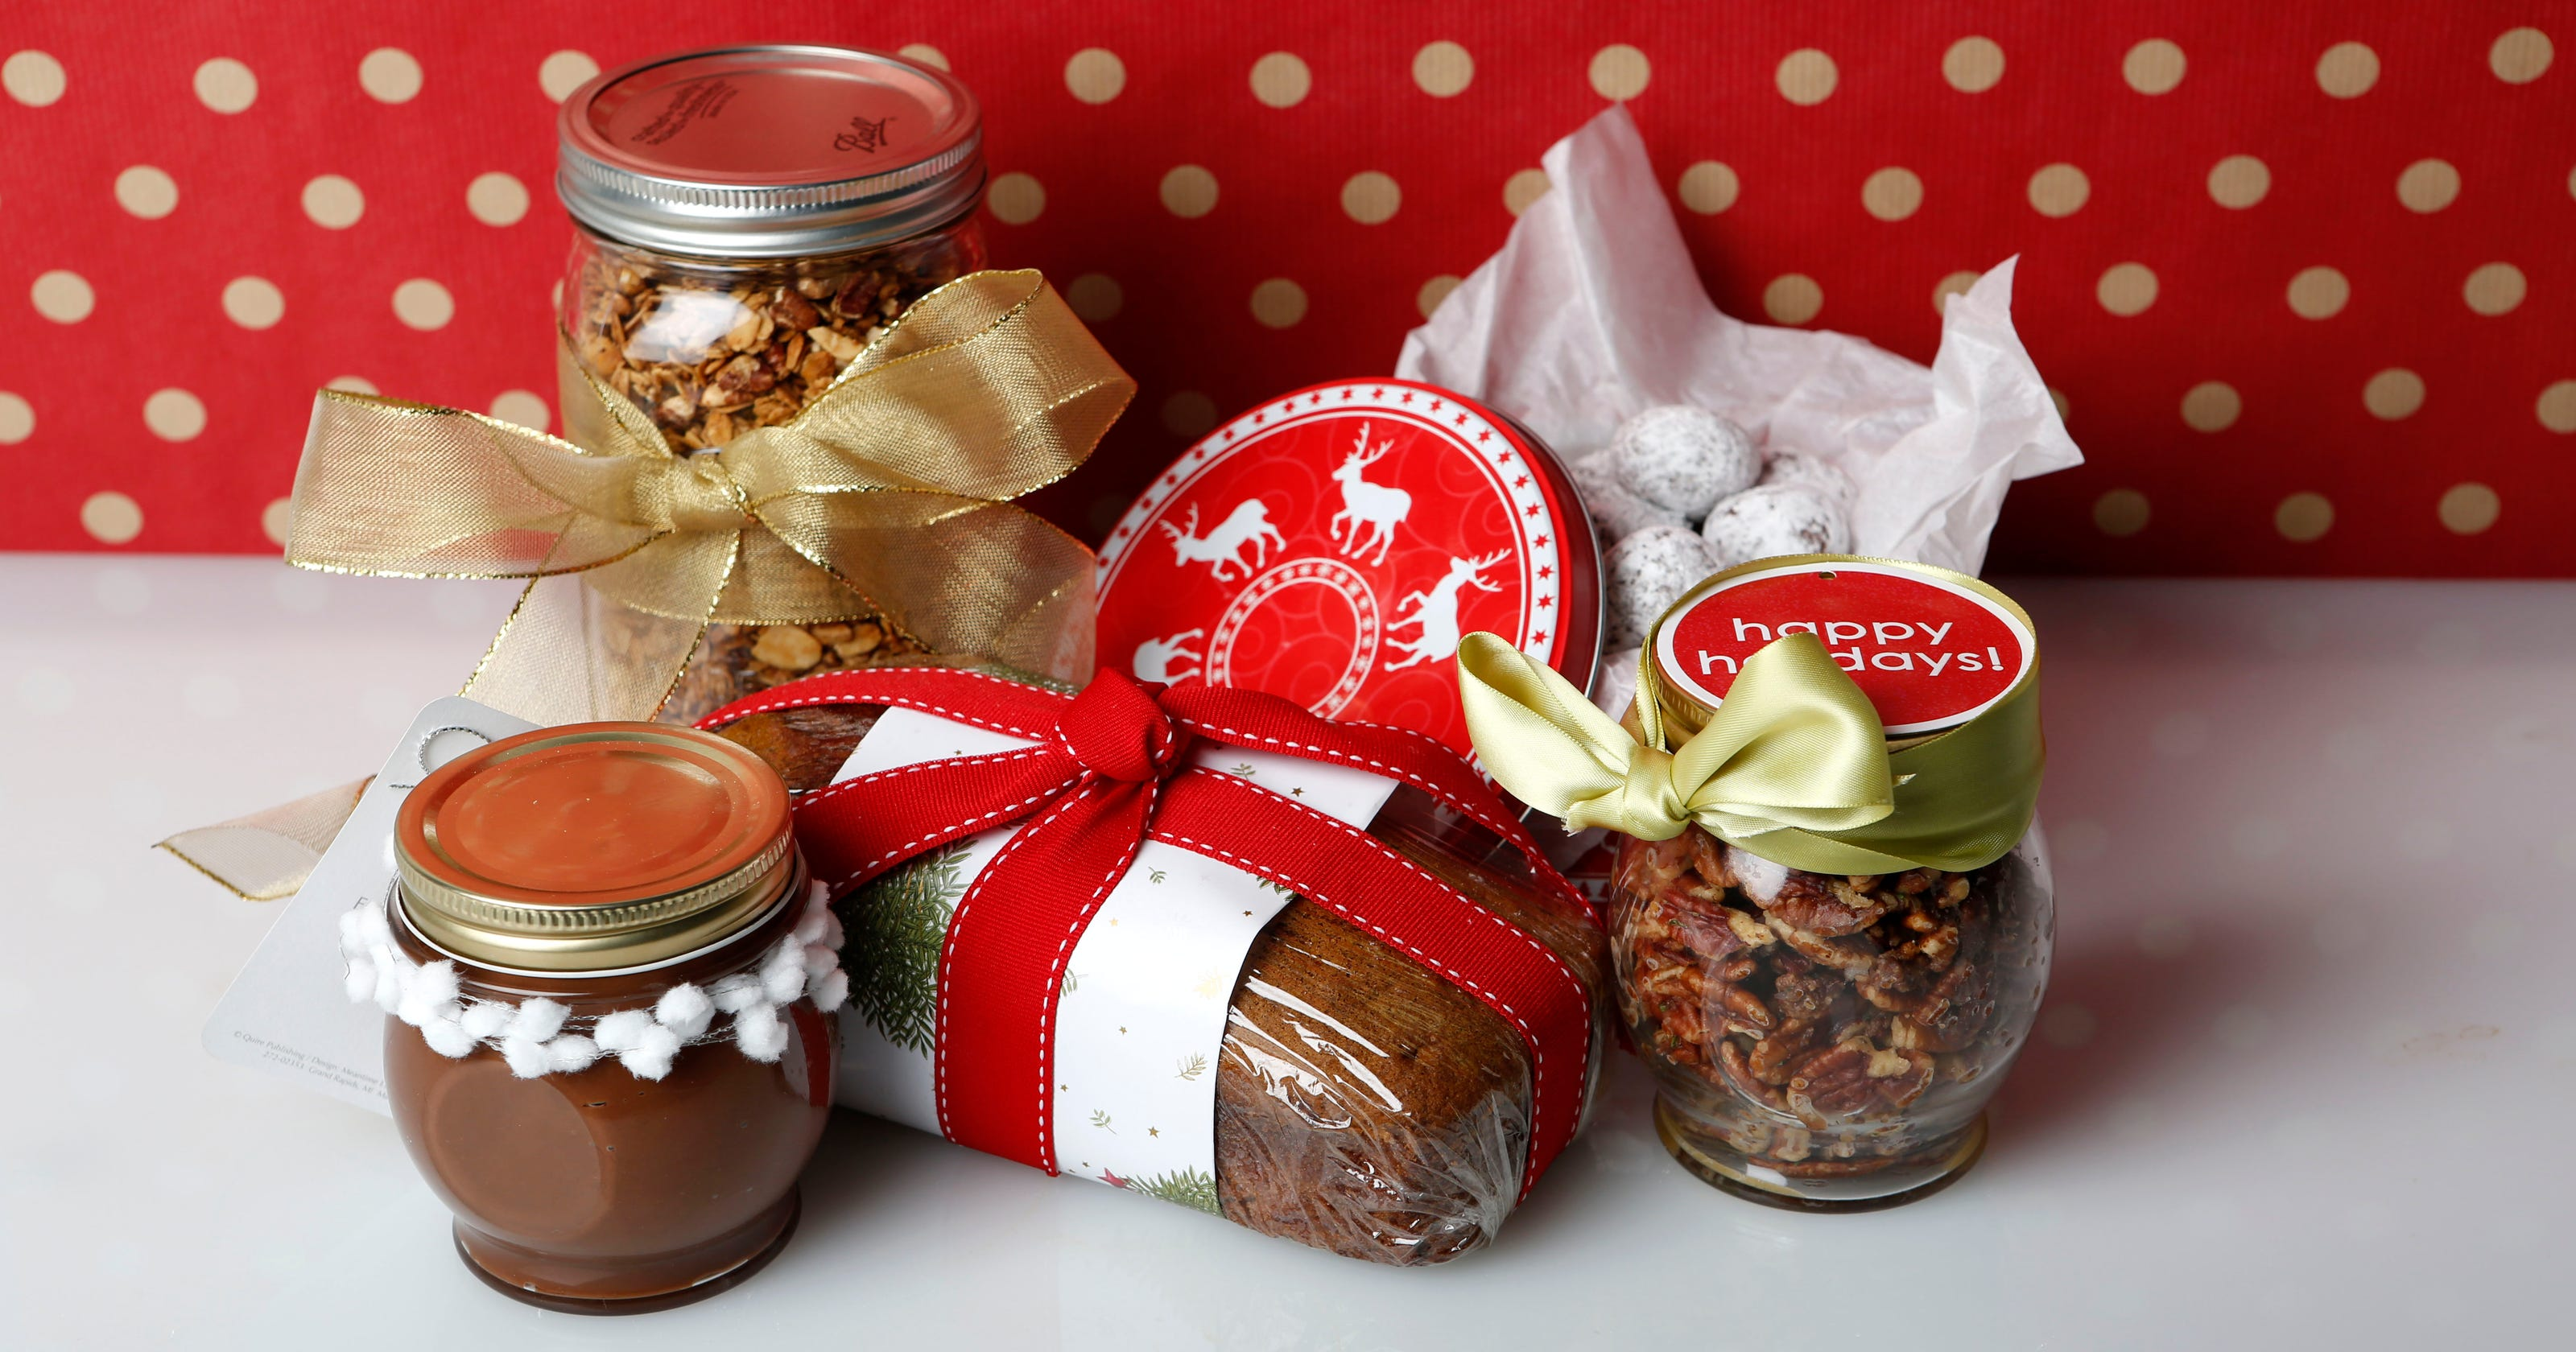 Homemade Edible Holiday Desert Gifts For Christmas: 5 Ideas